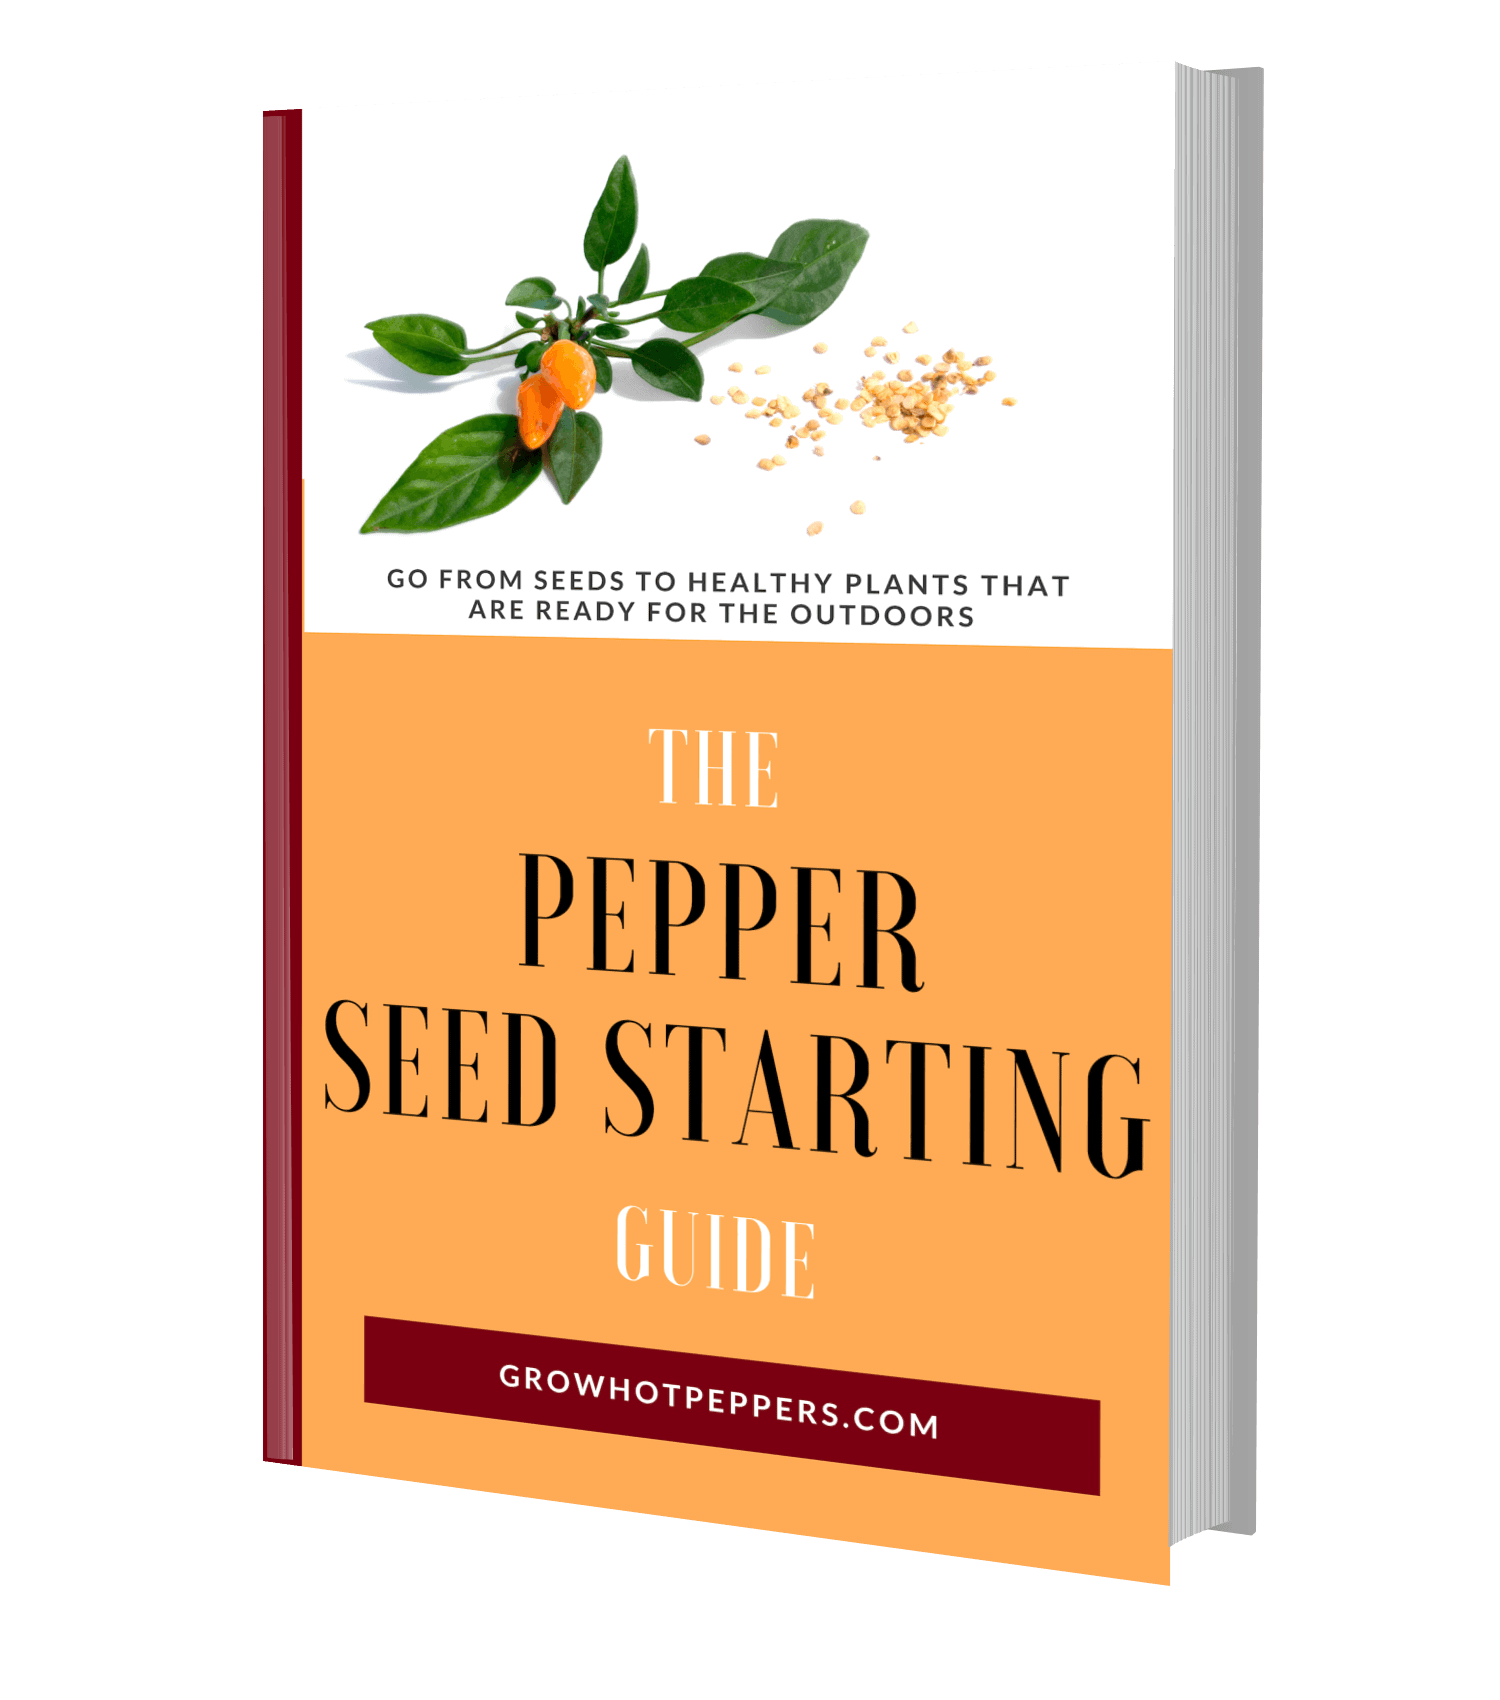 The Pepper Seed Starting Guide 3D book image